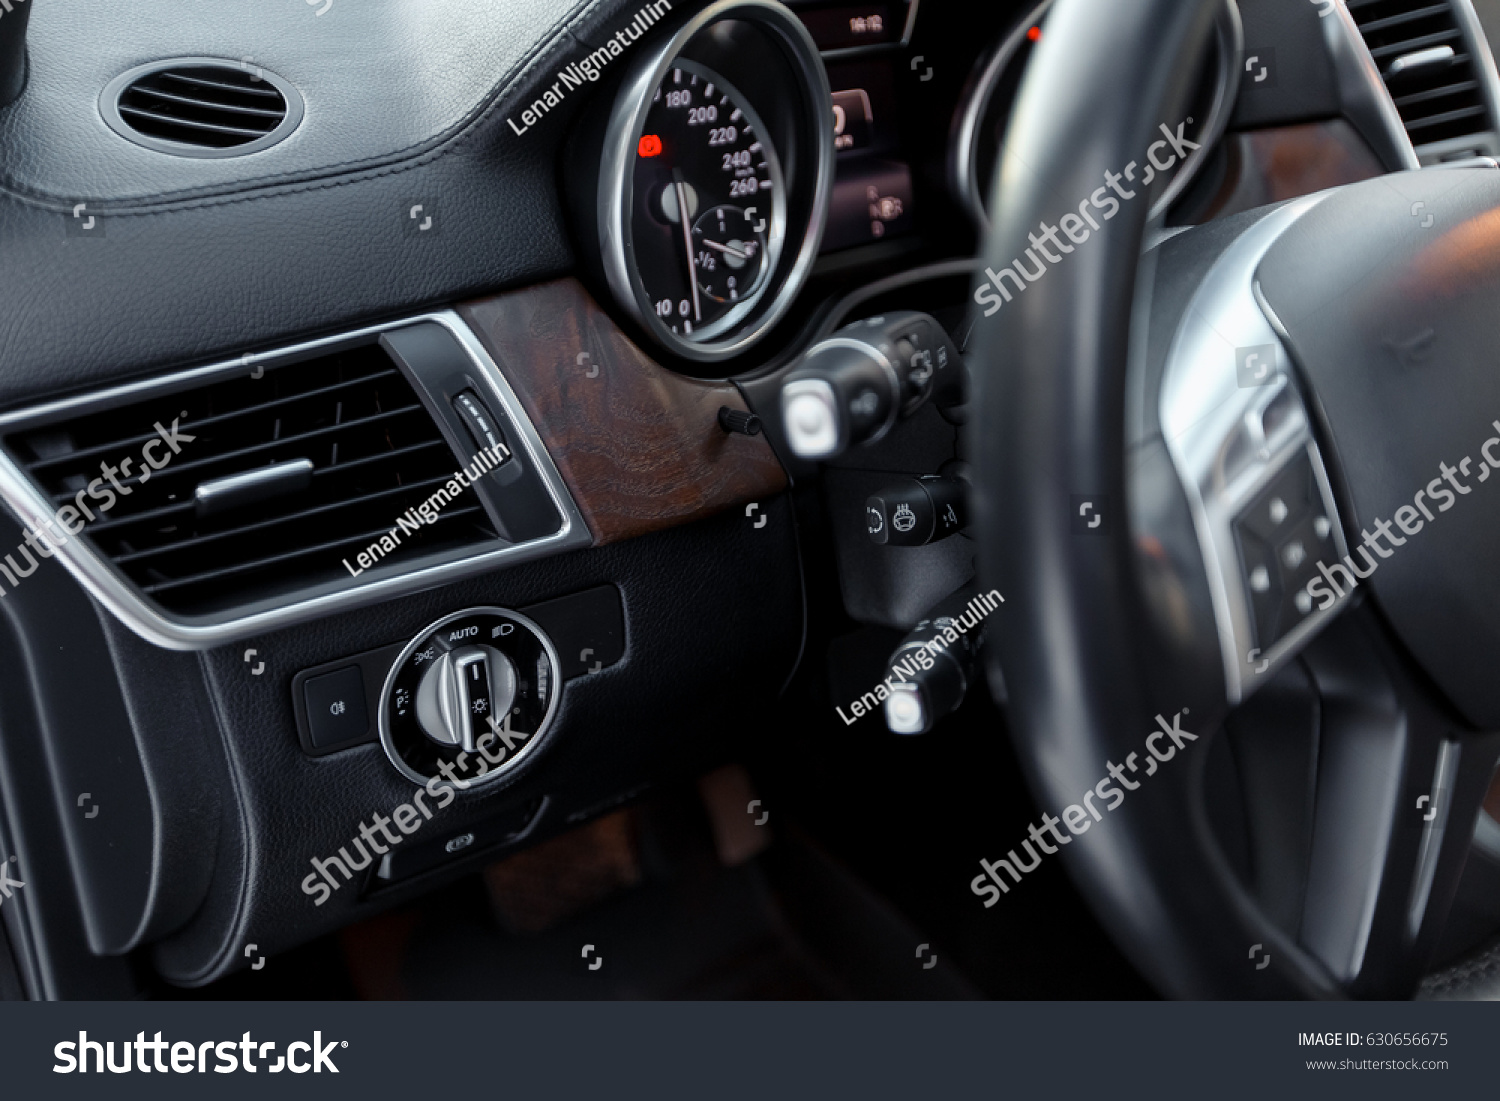 Car Dashboard With Focus On Engine Start Stop Button Modern Car